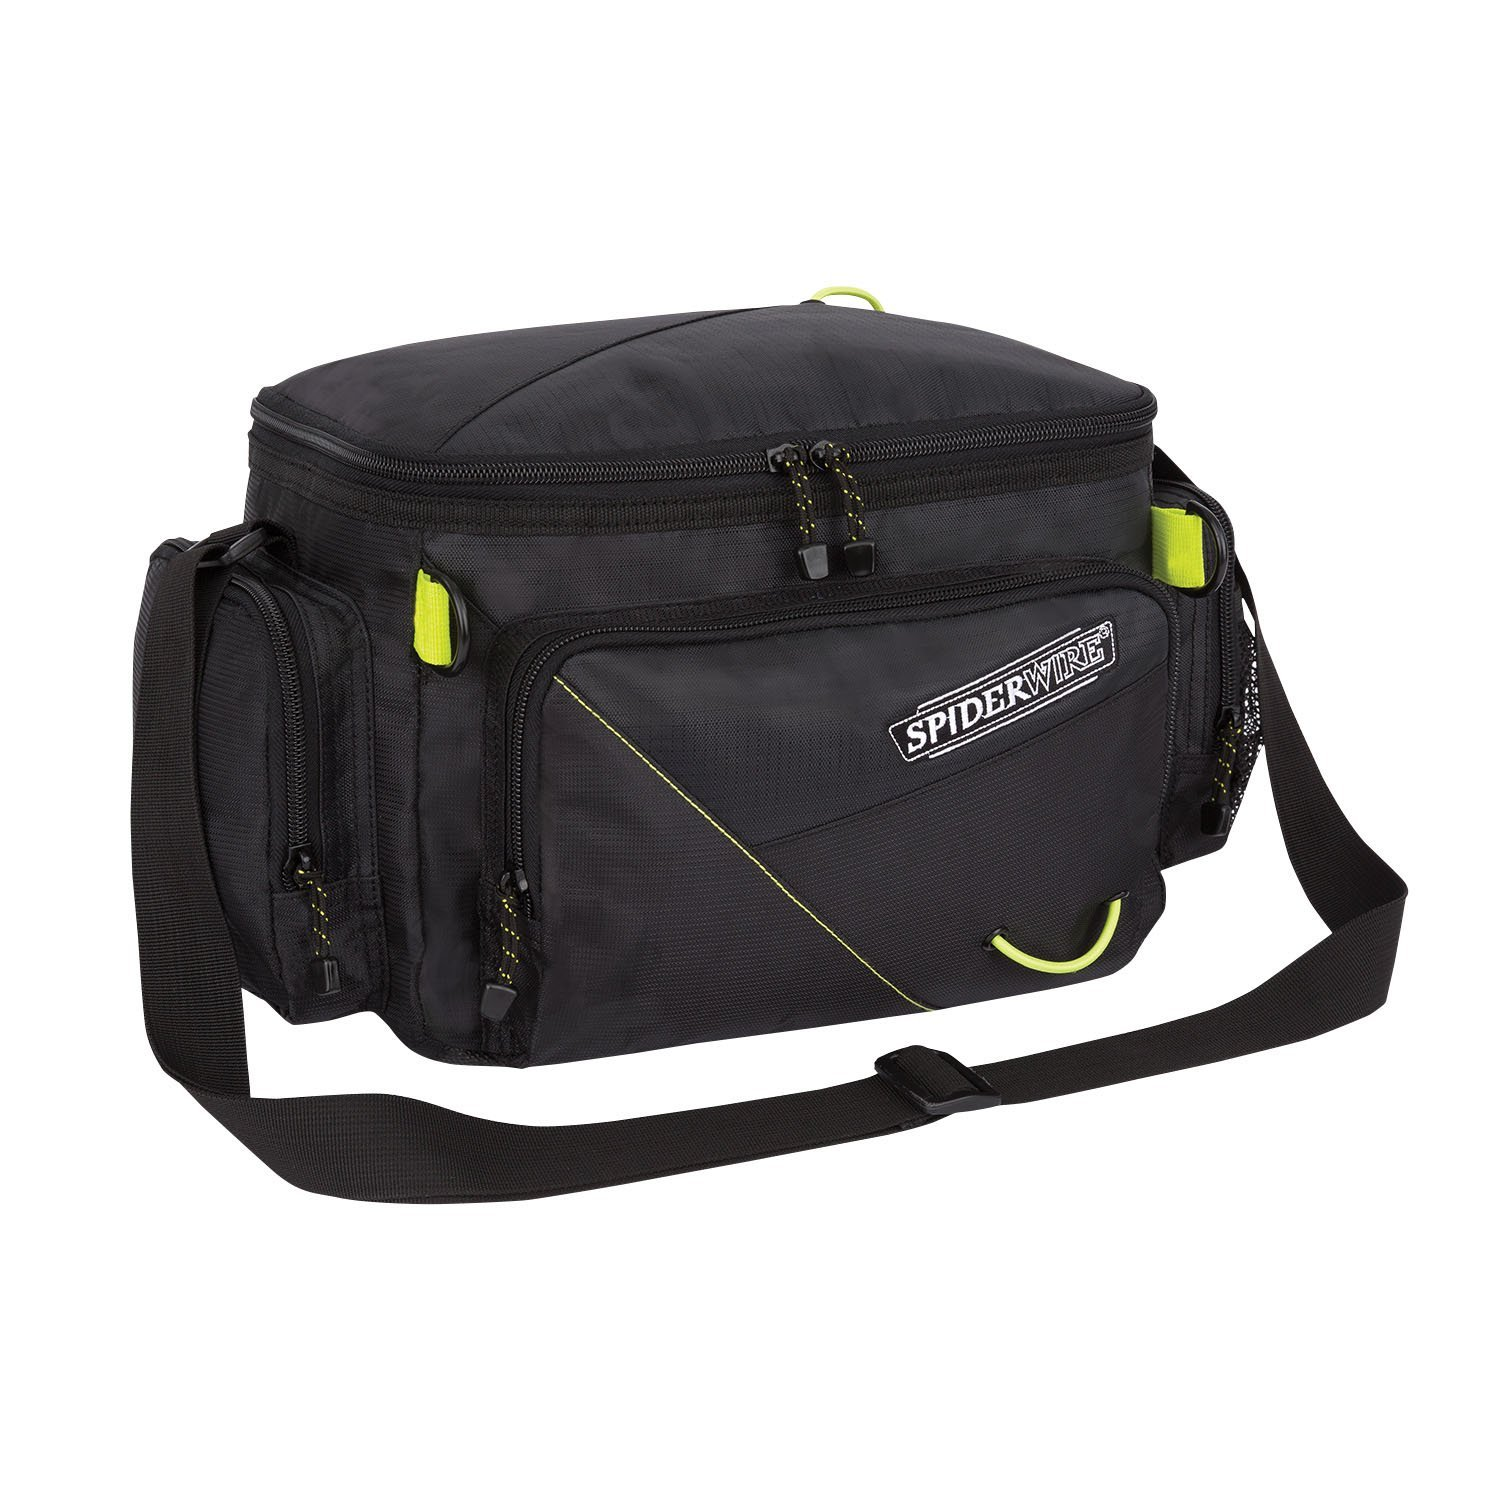 Cheap Spiderwire Tackle Bag Find Spiderwire Tackle Bag